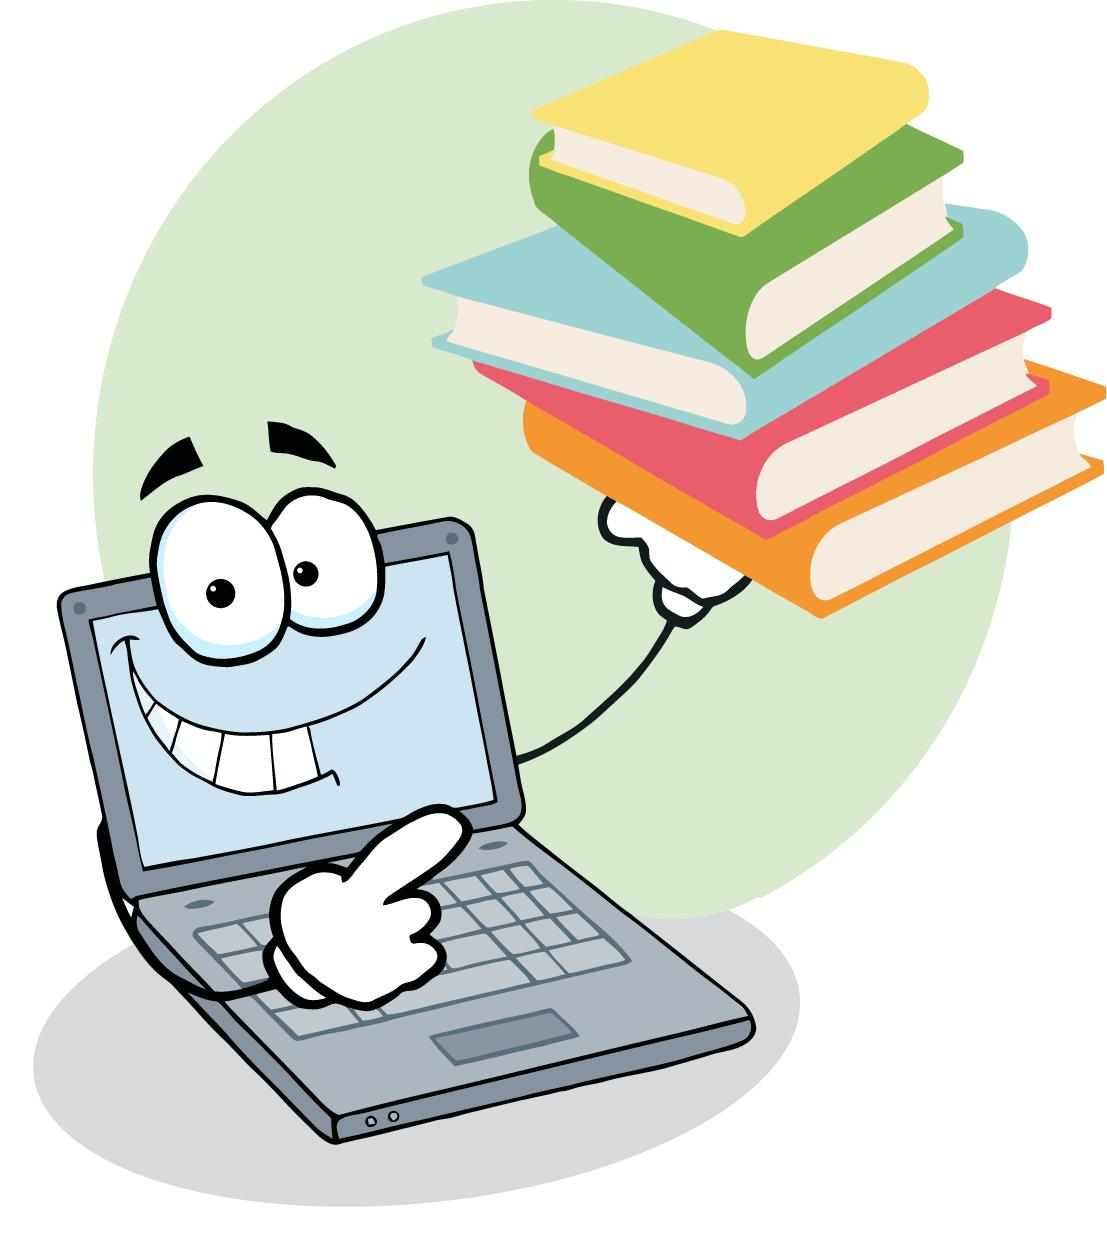 jpg_2037-Laptop-Cartoon-Character-Displays-Pile-Of-Books